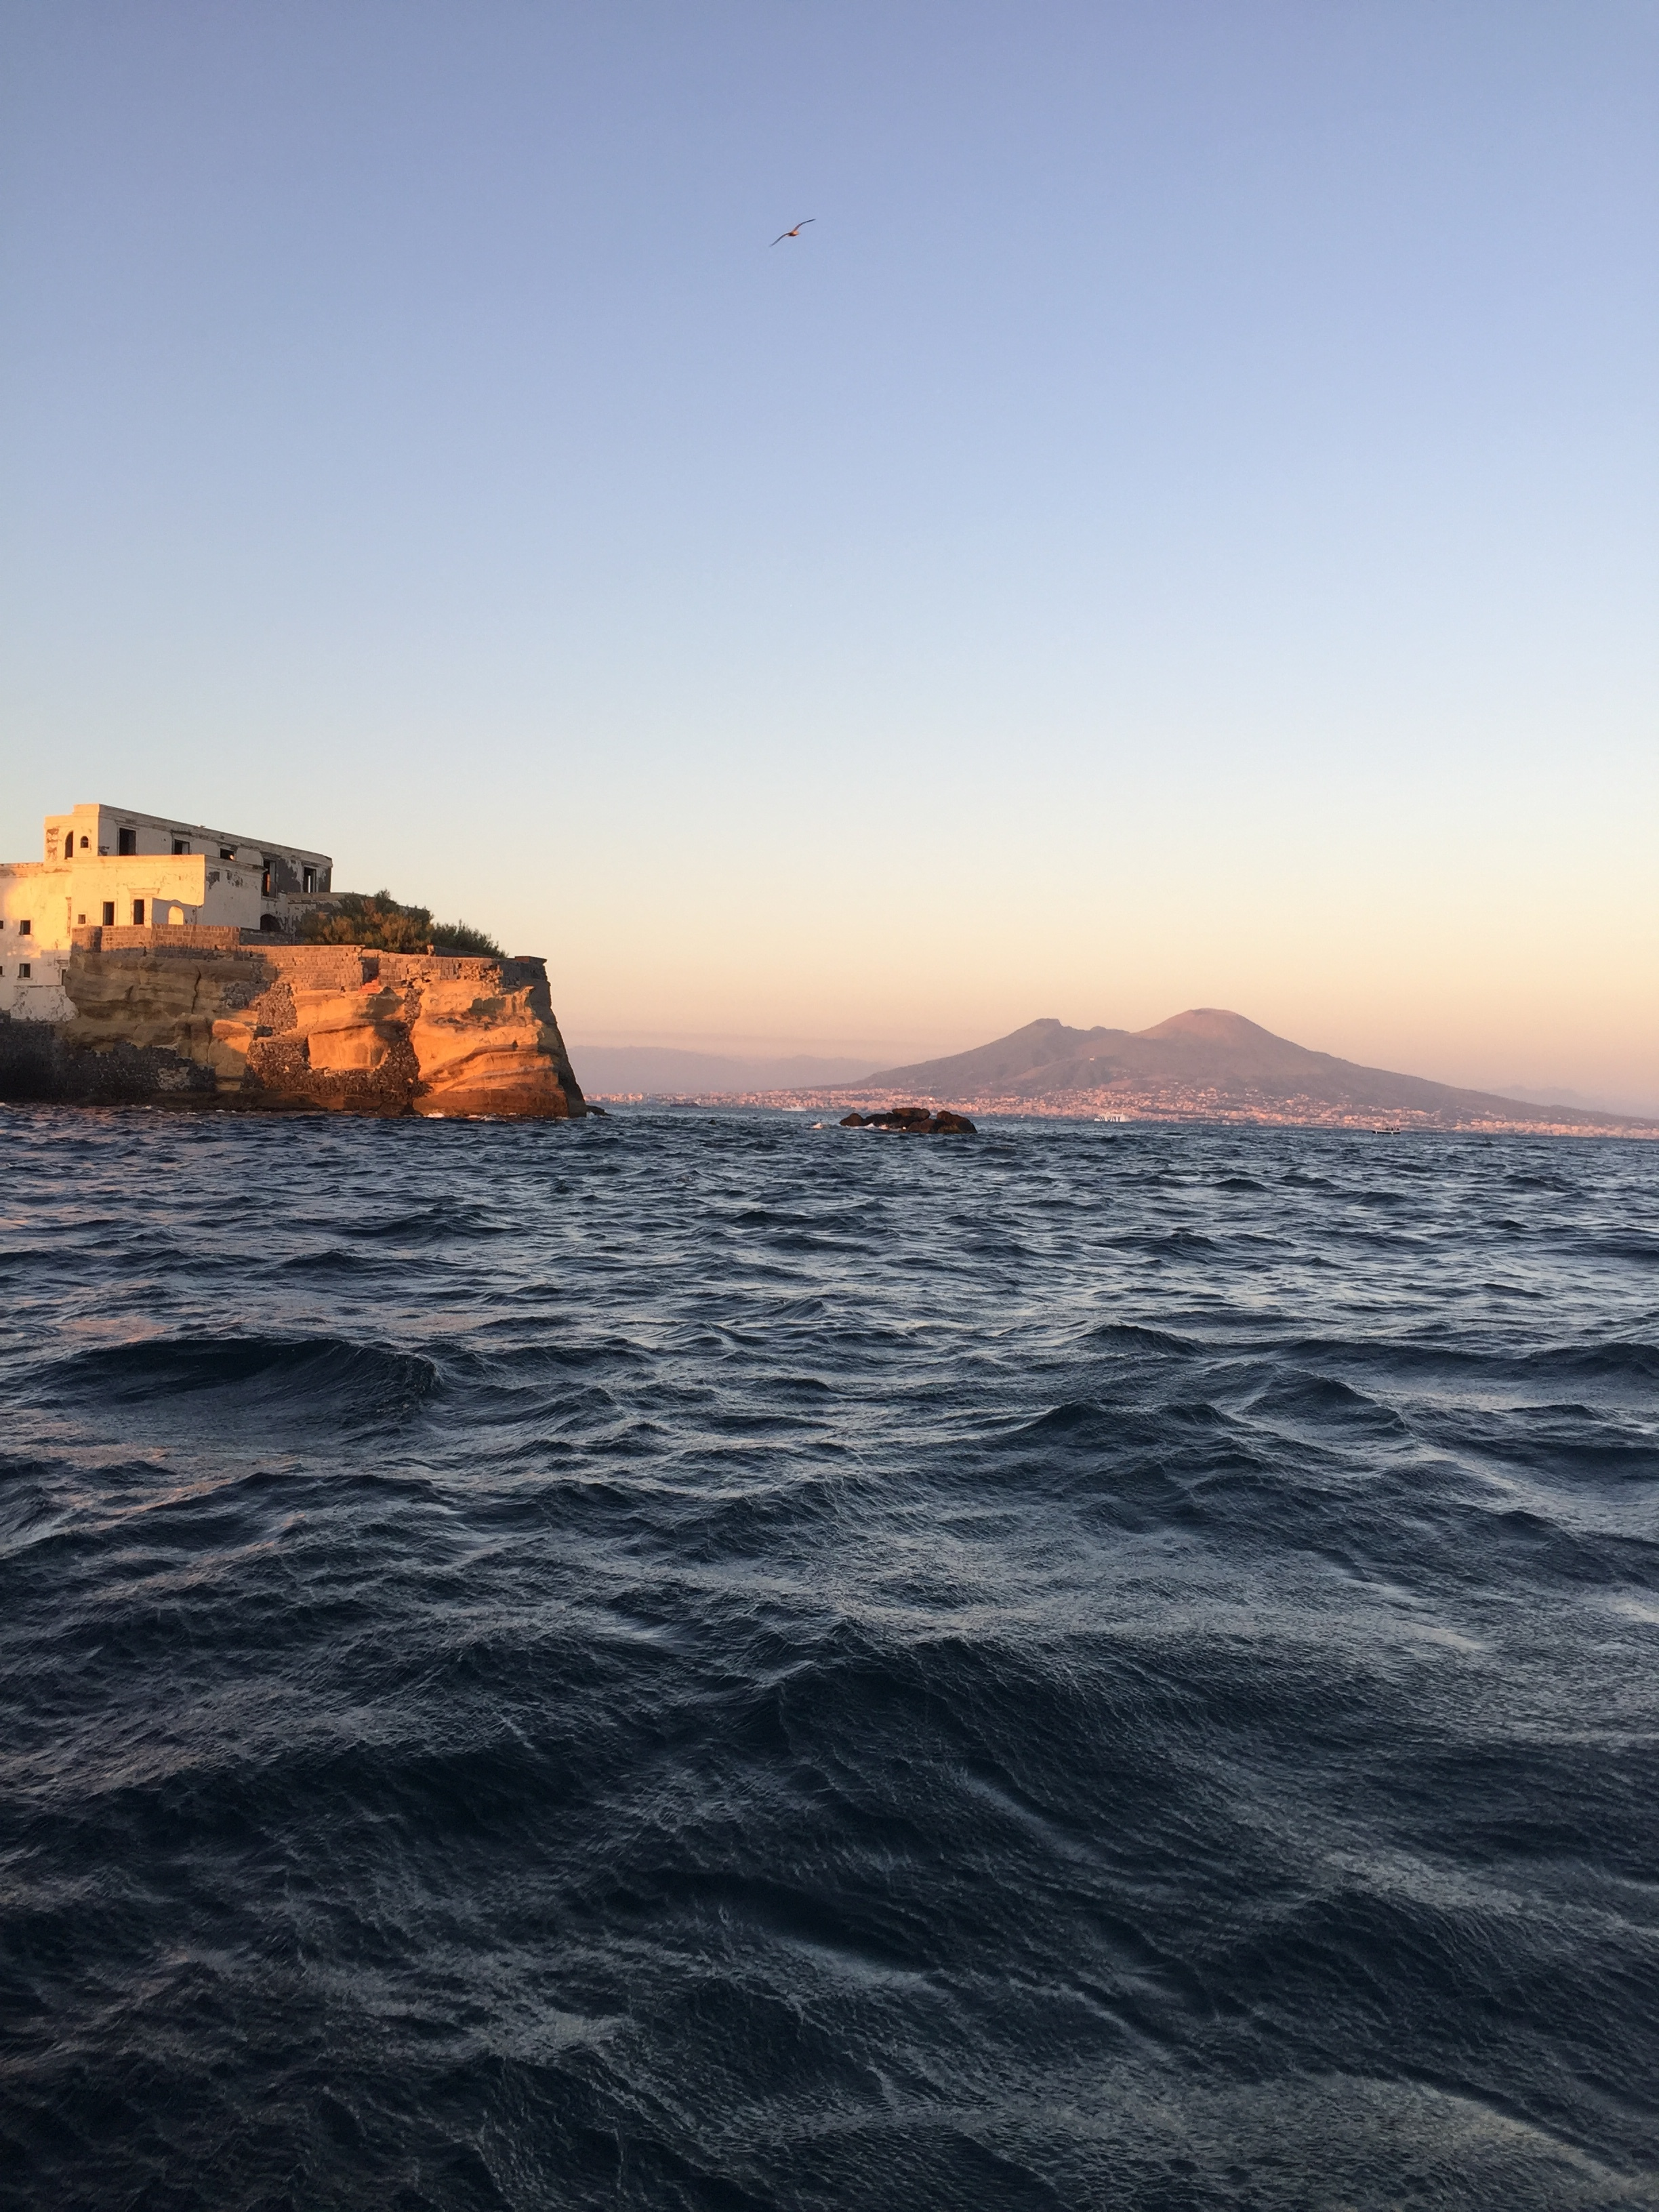 Napoli by sea - Pic courtesy of Travel Italian Style during our Private Naples By Sea Side Tour